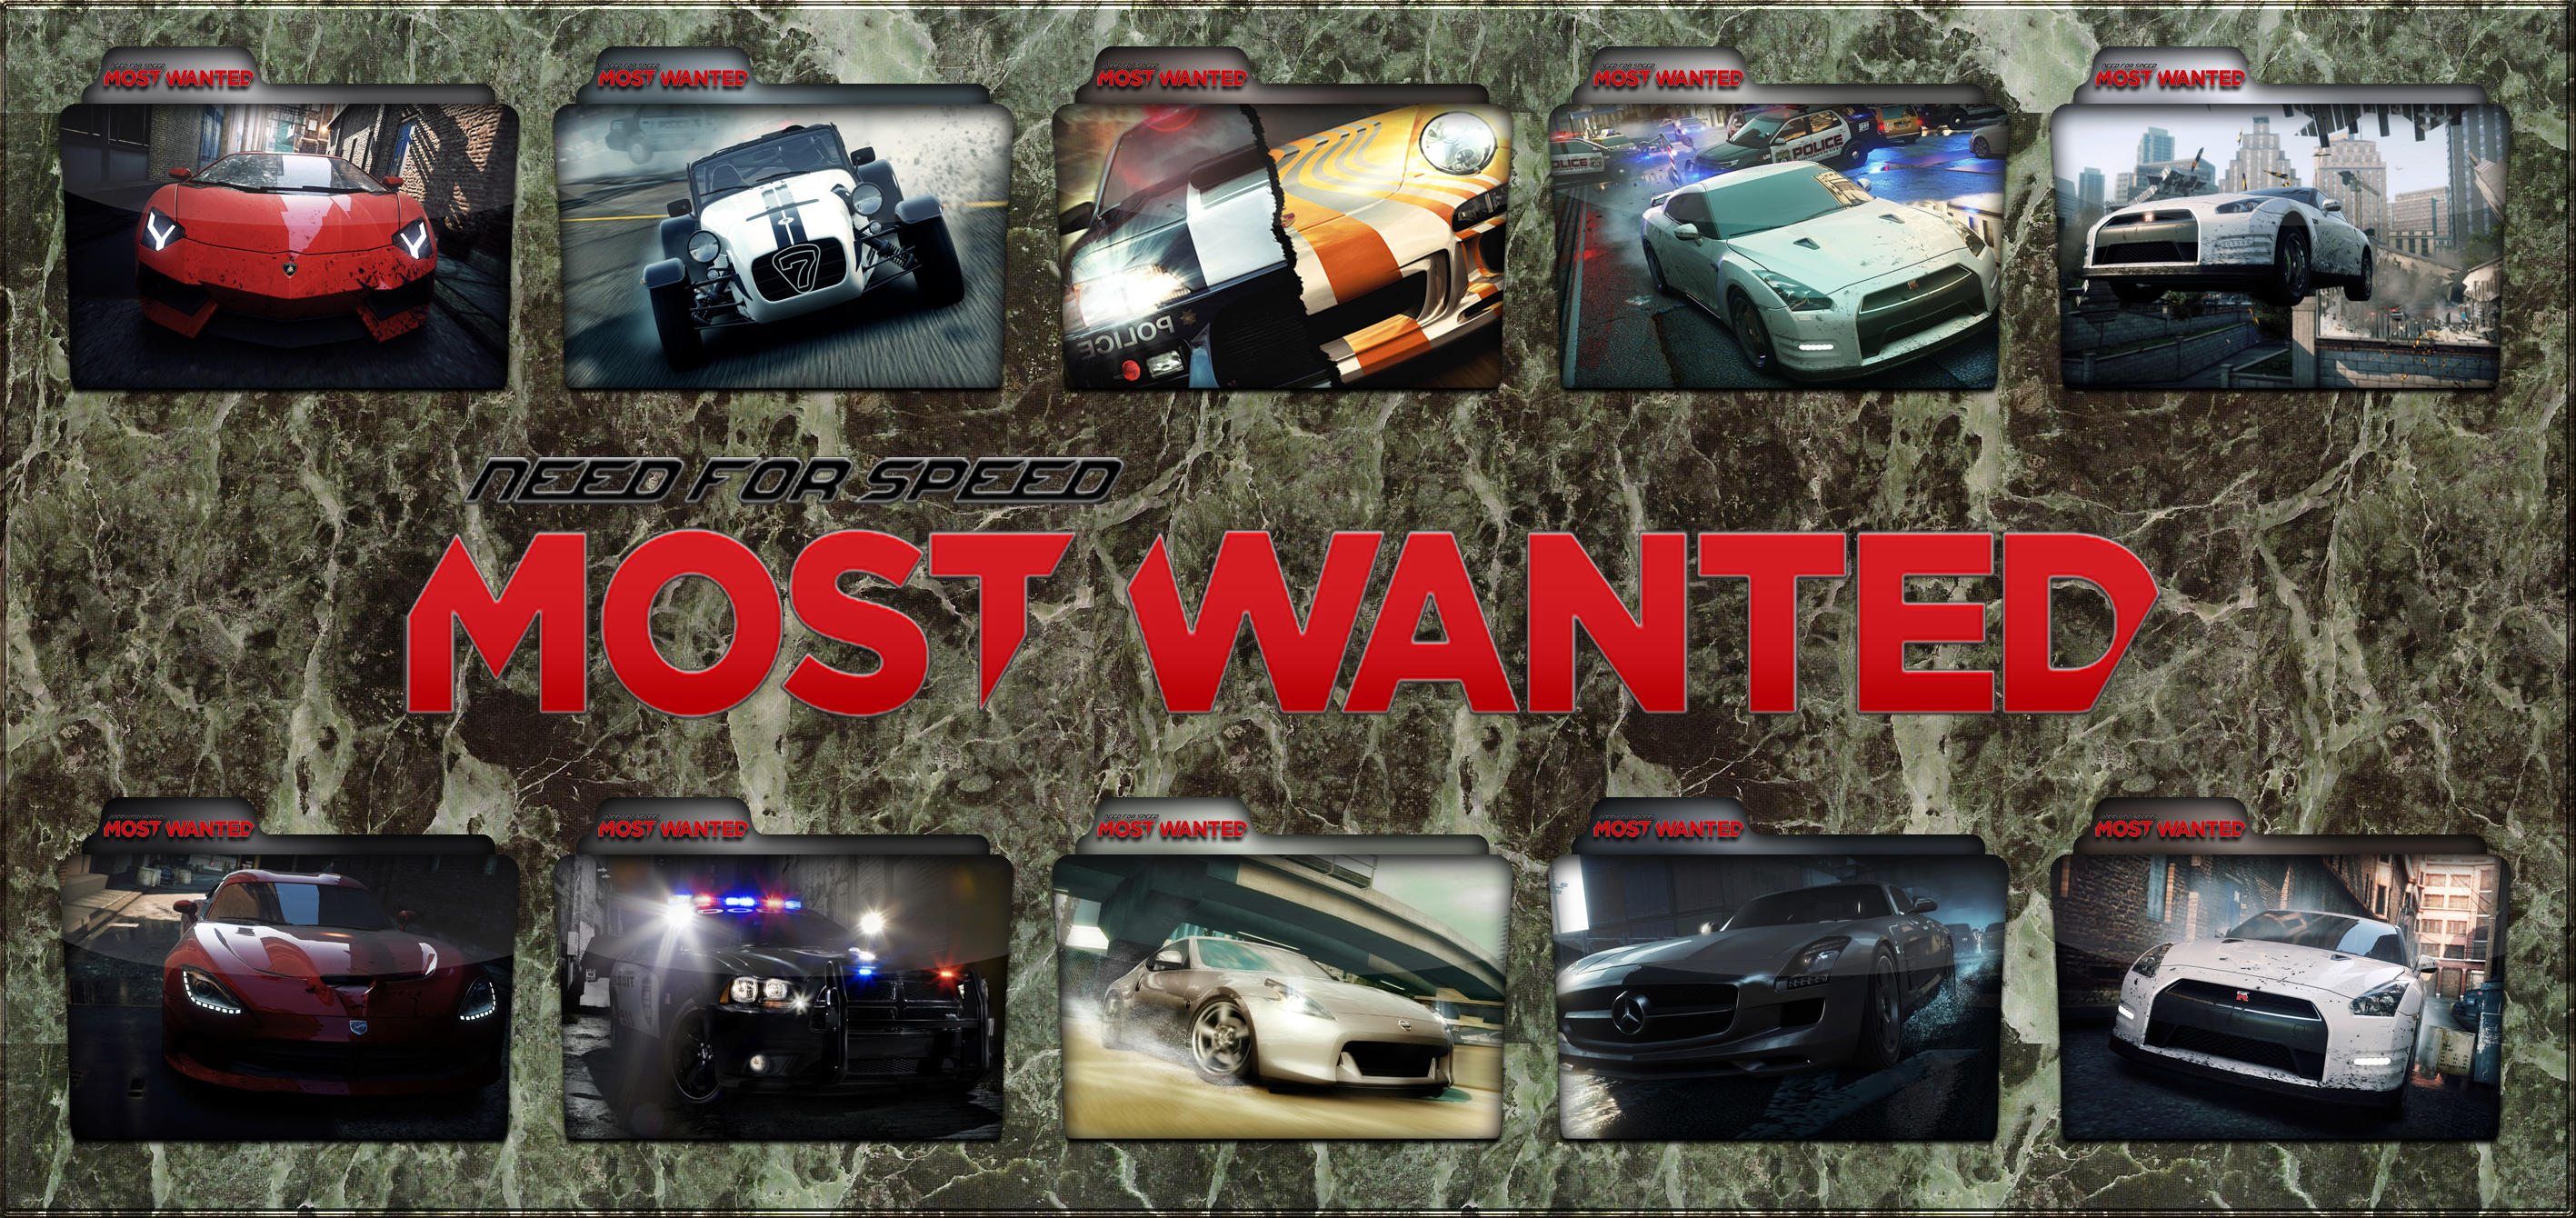 Need for Speed Most Wanted by lewamora4ok on DeviantArt